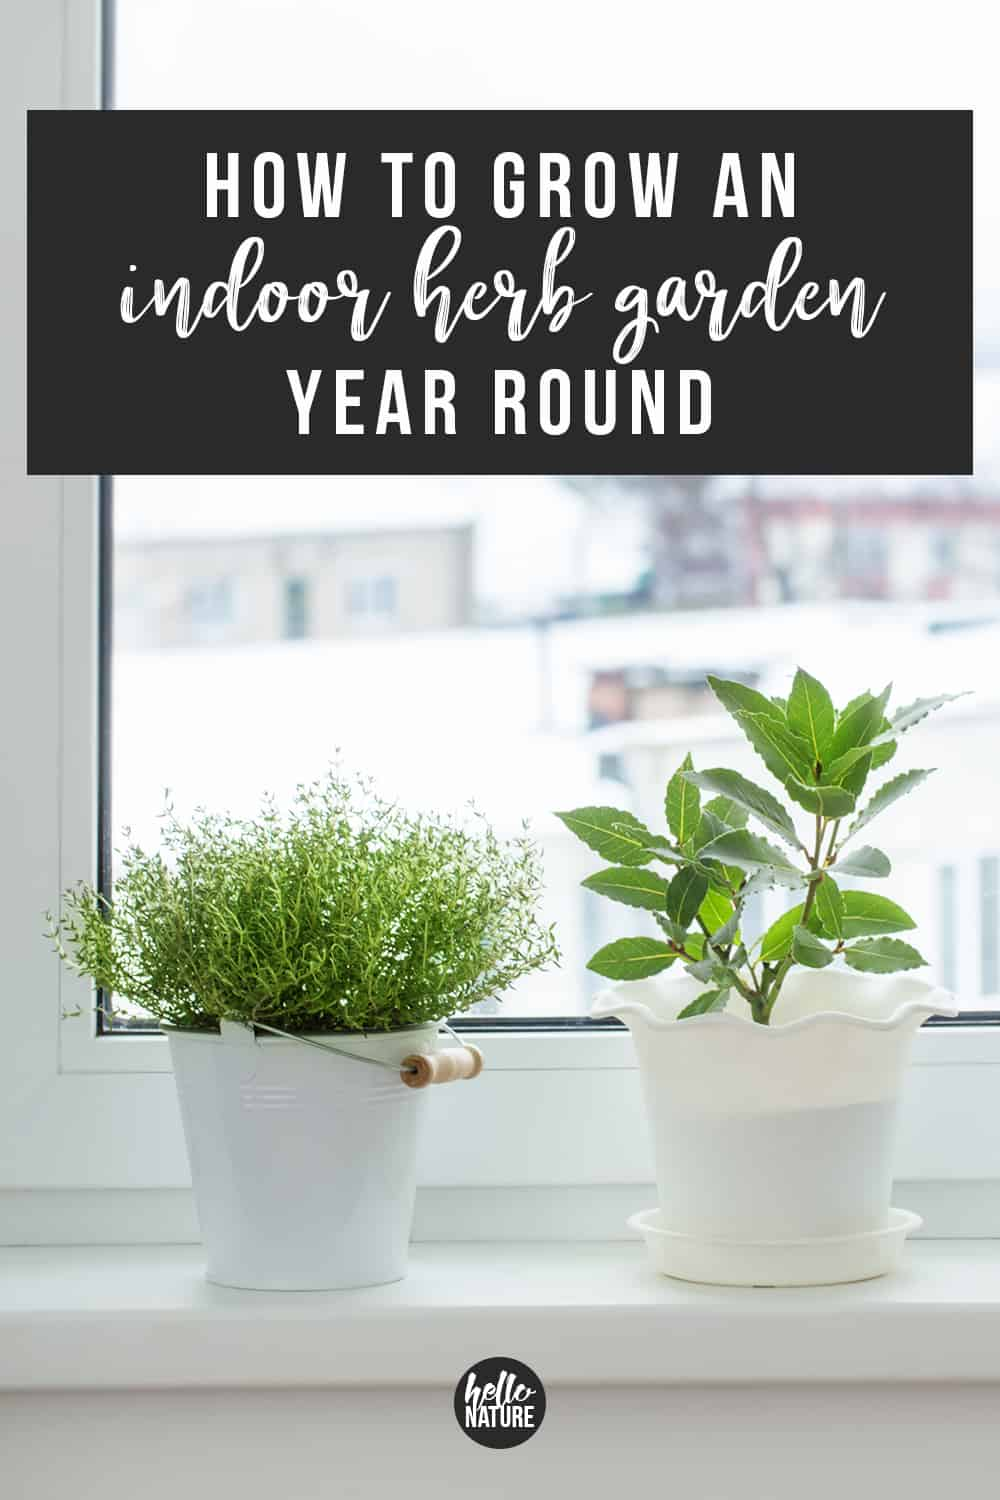 Trying to figure out how to grow herbs year round? You need these beginner indoor herb garden tips! You'll be able to grow herbs inside your home with these 9 easy tips. #HerbGarden #Herbs #Homesteading #IndoorHerbGarden #BeginnerGardener